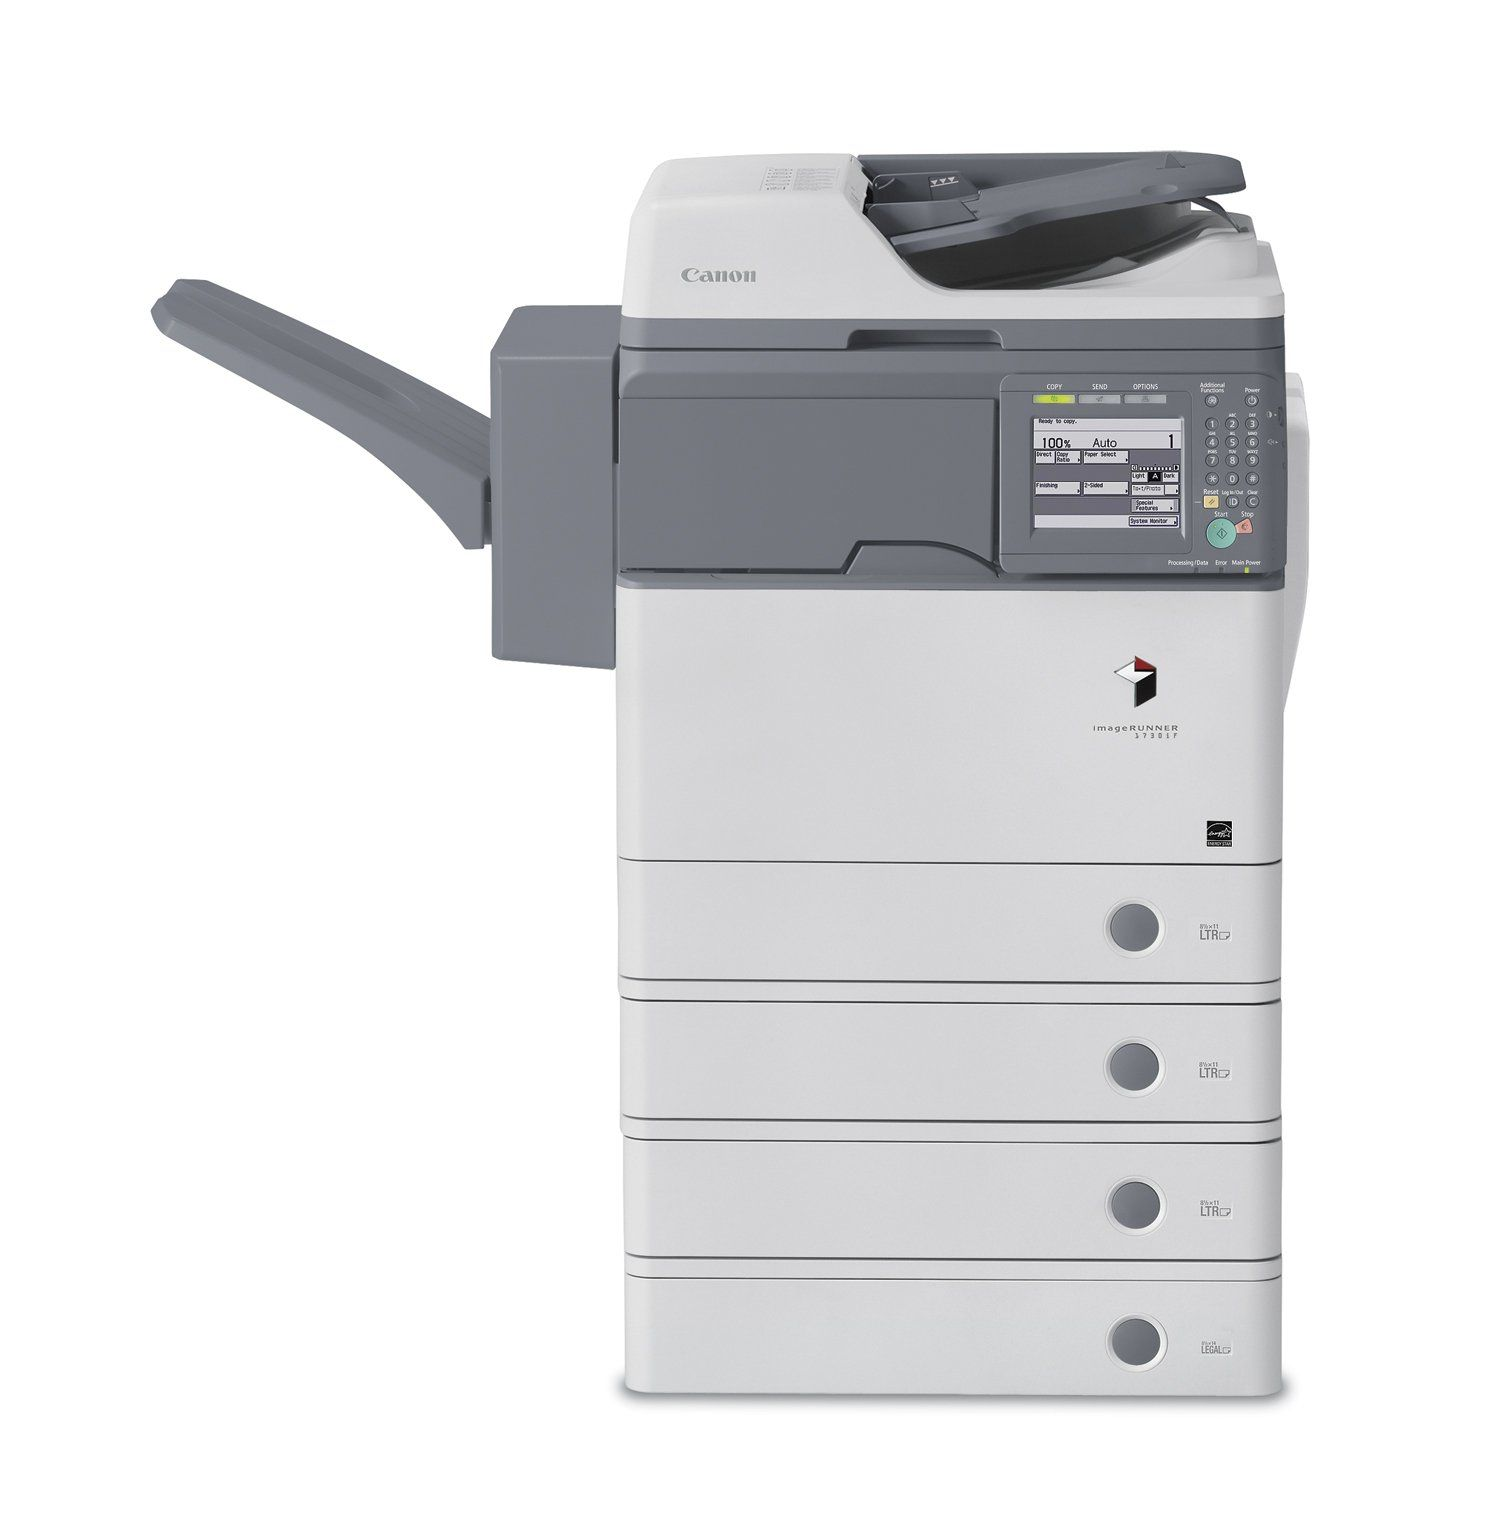 Canon Imagerunner 1730if Digital Copier With Images Brother